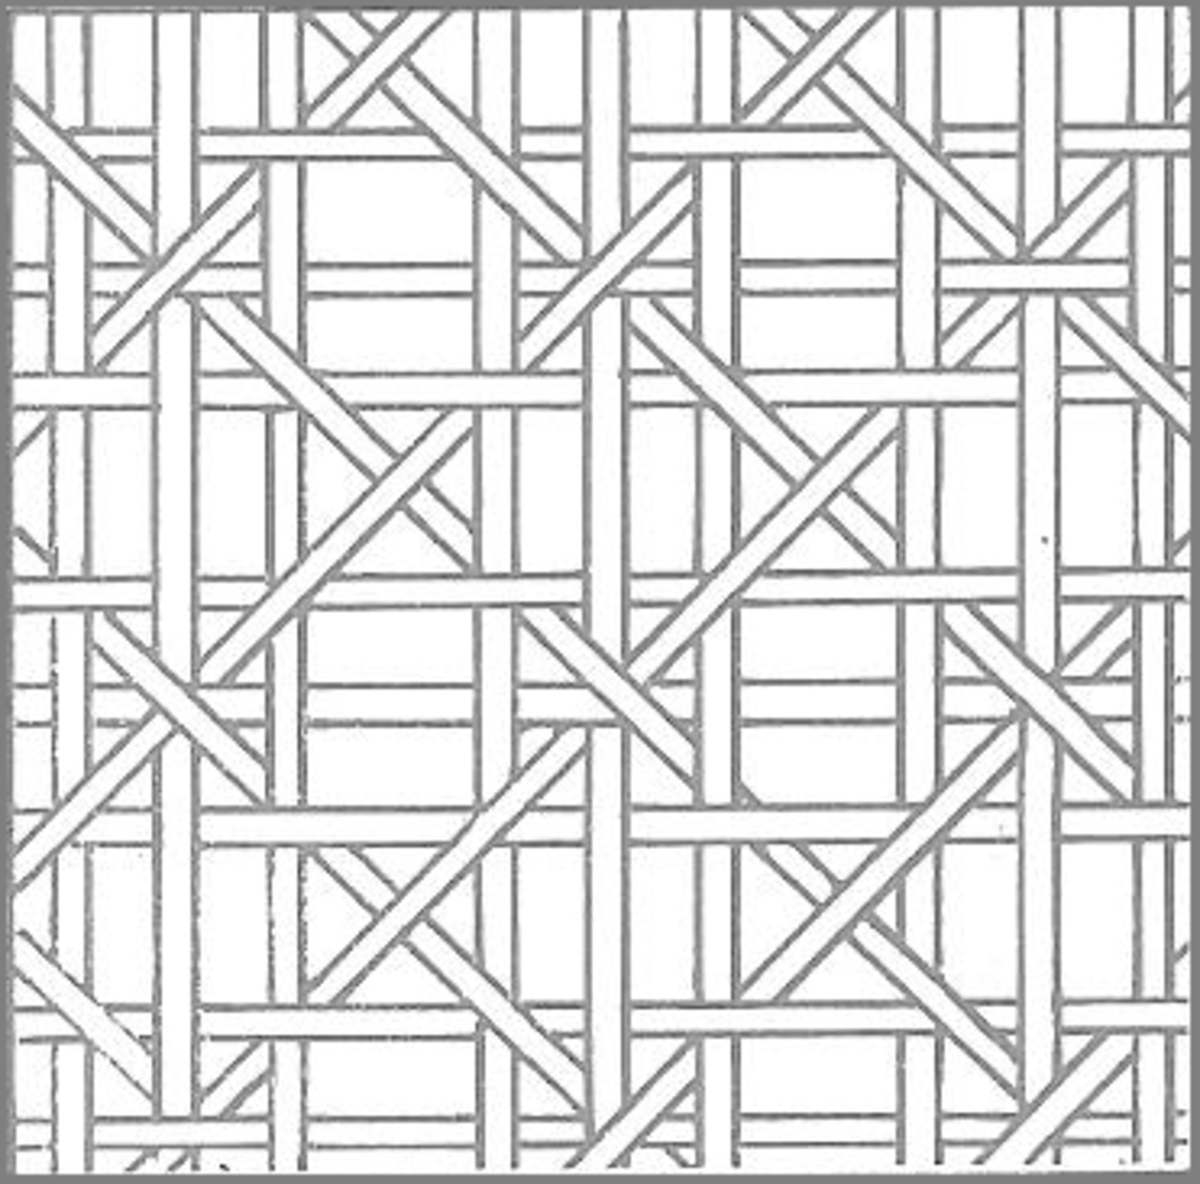 Figure 2: An Alternative Caning Pattern